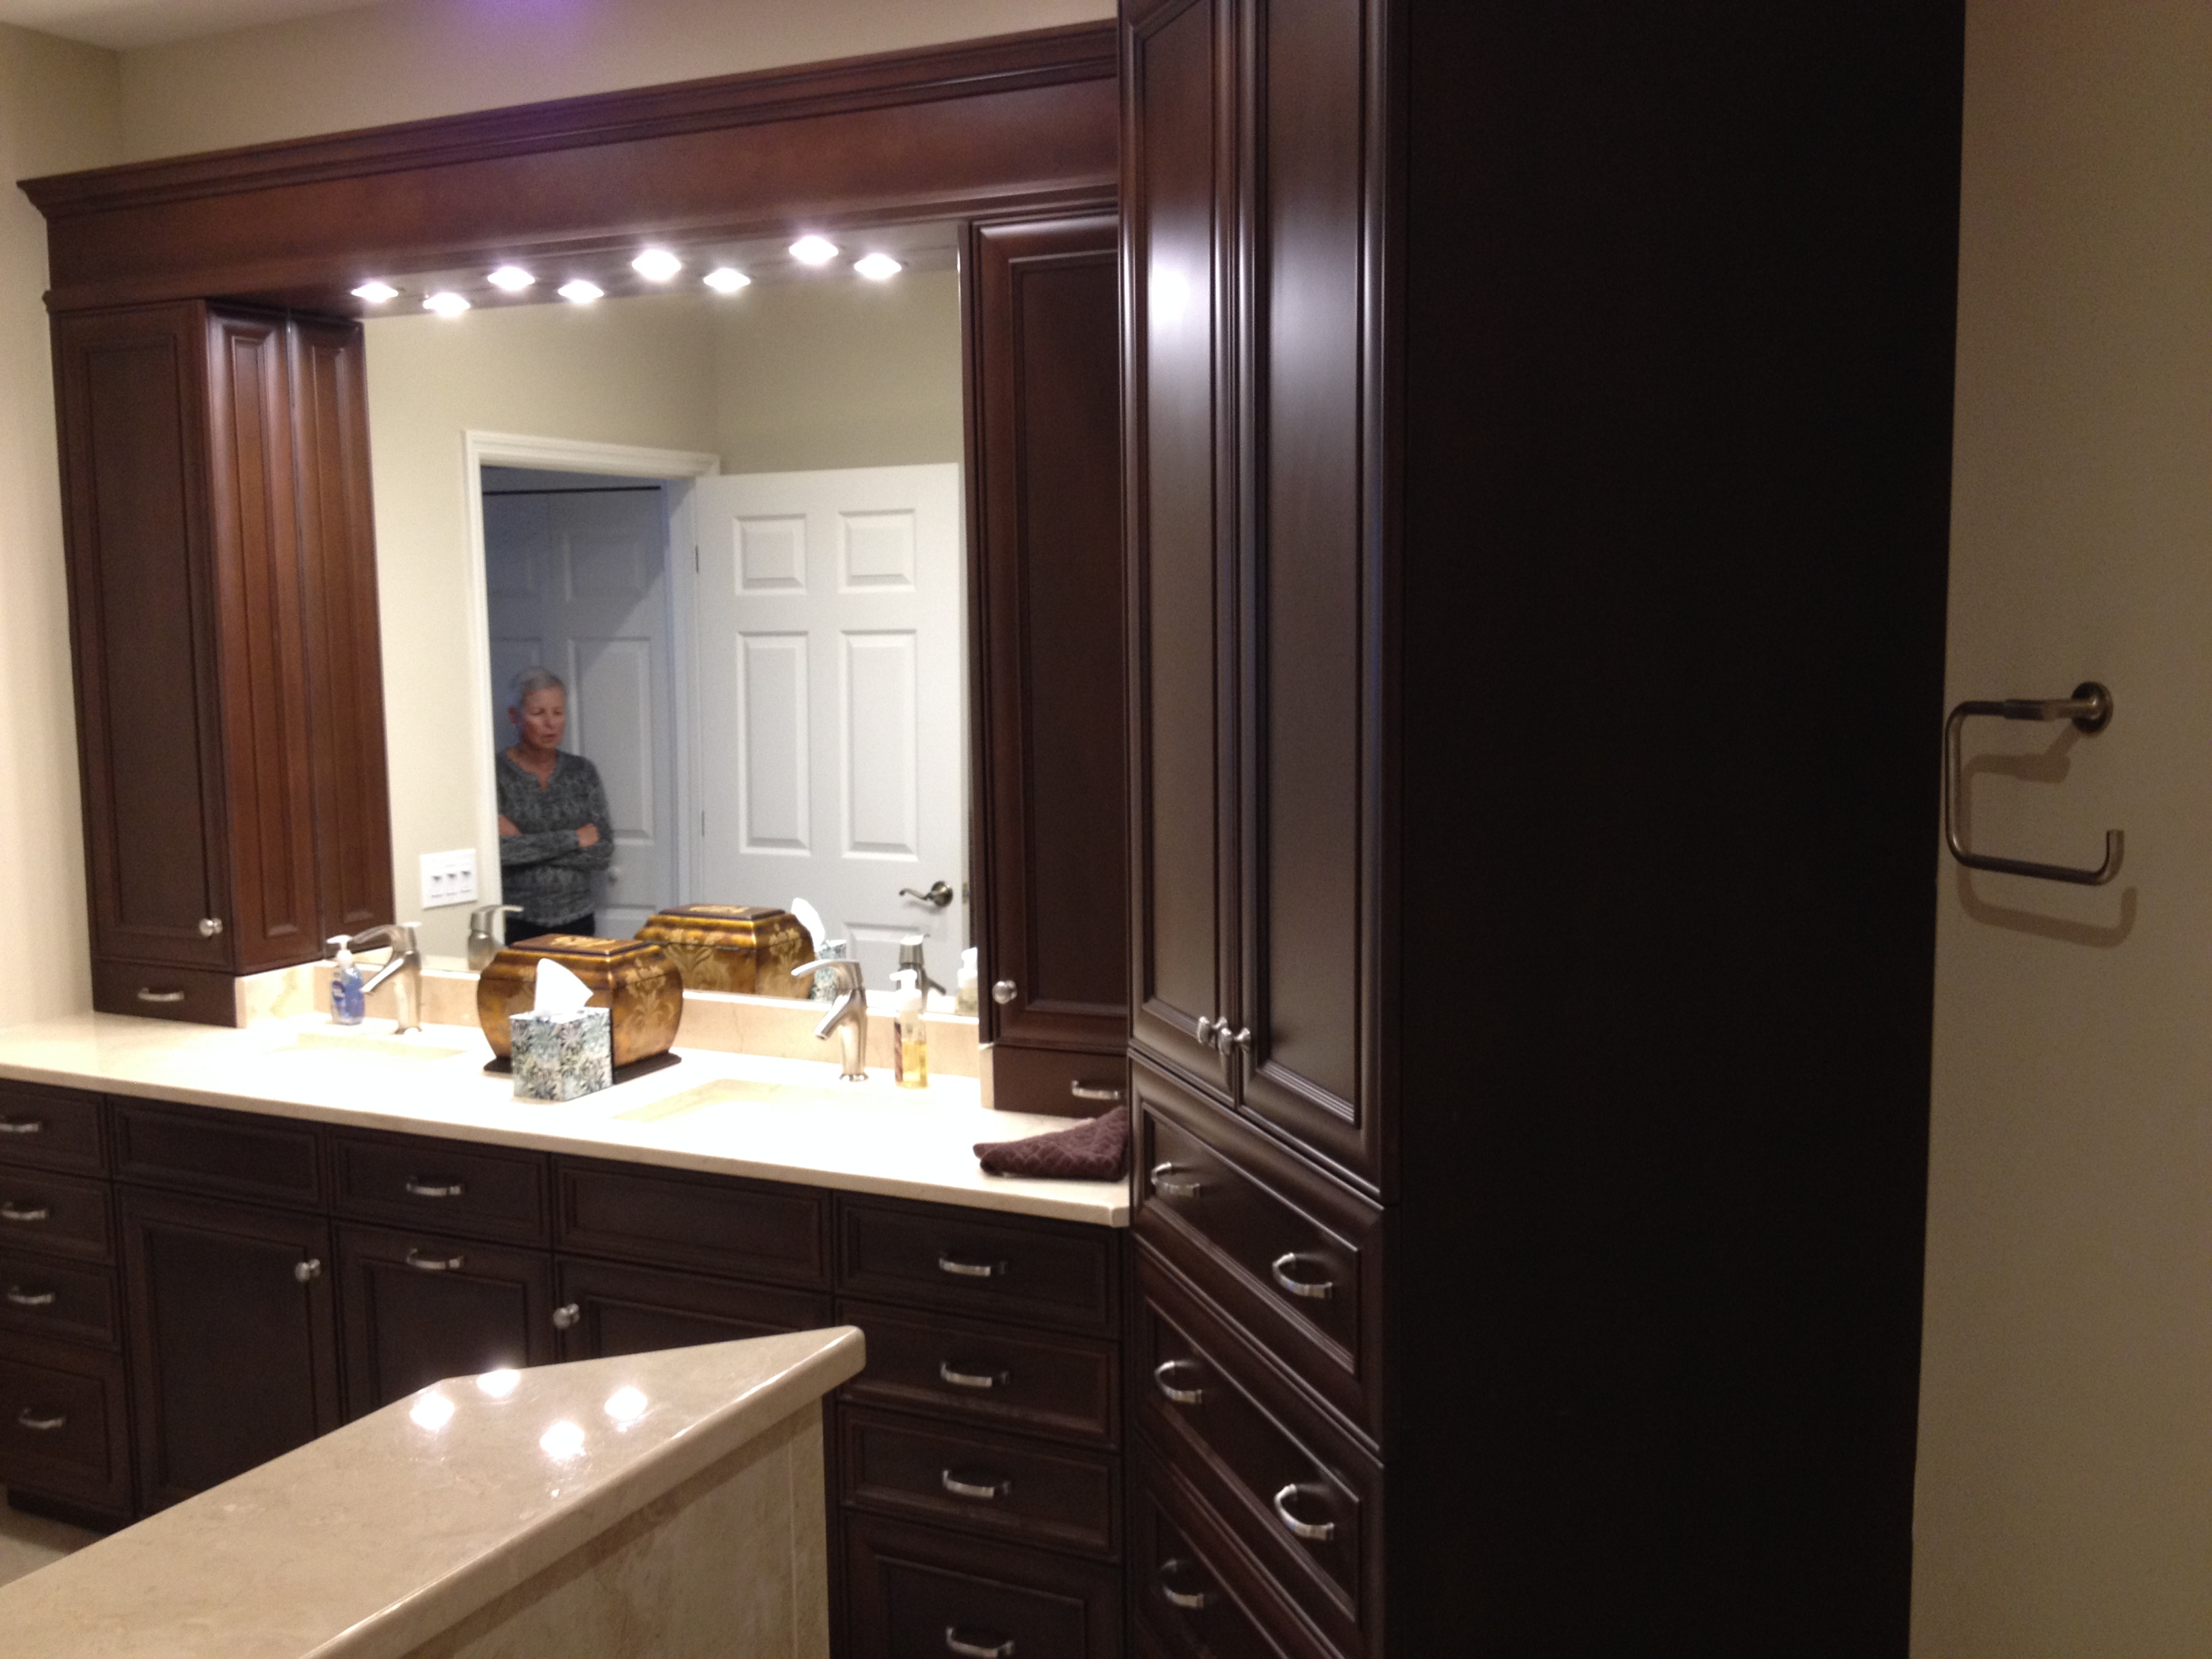 Bathroom Cabinets Naples Fl custom kitchen cabinets naples fl, refacing kitchen, counter tops